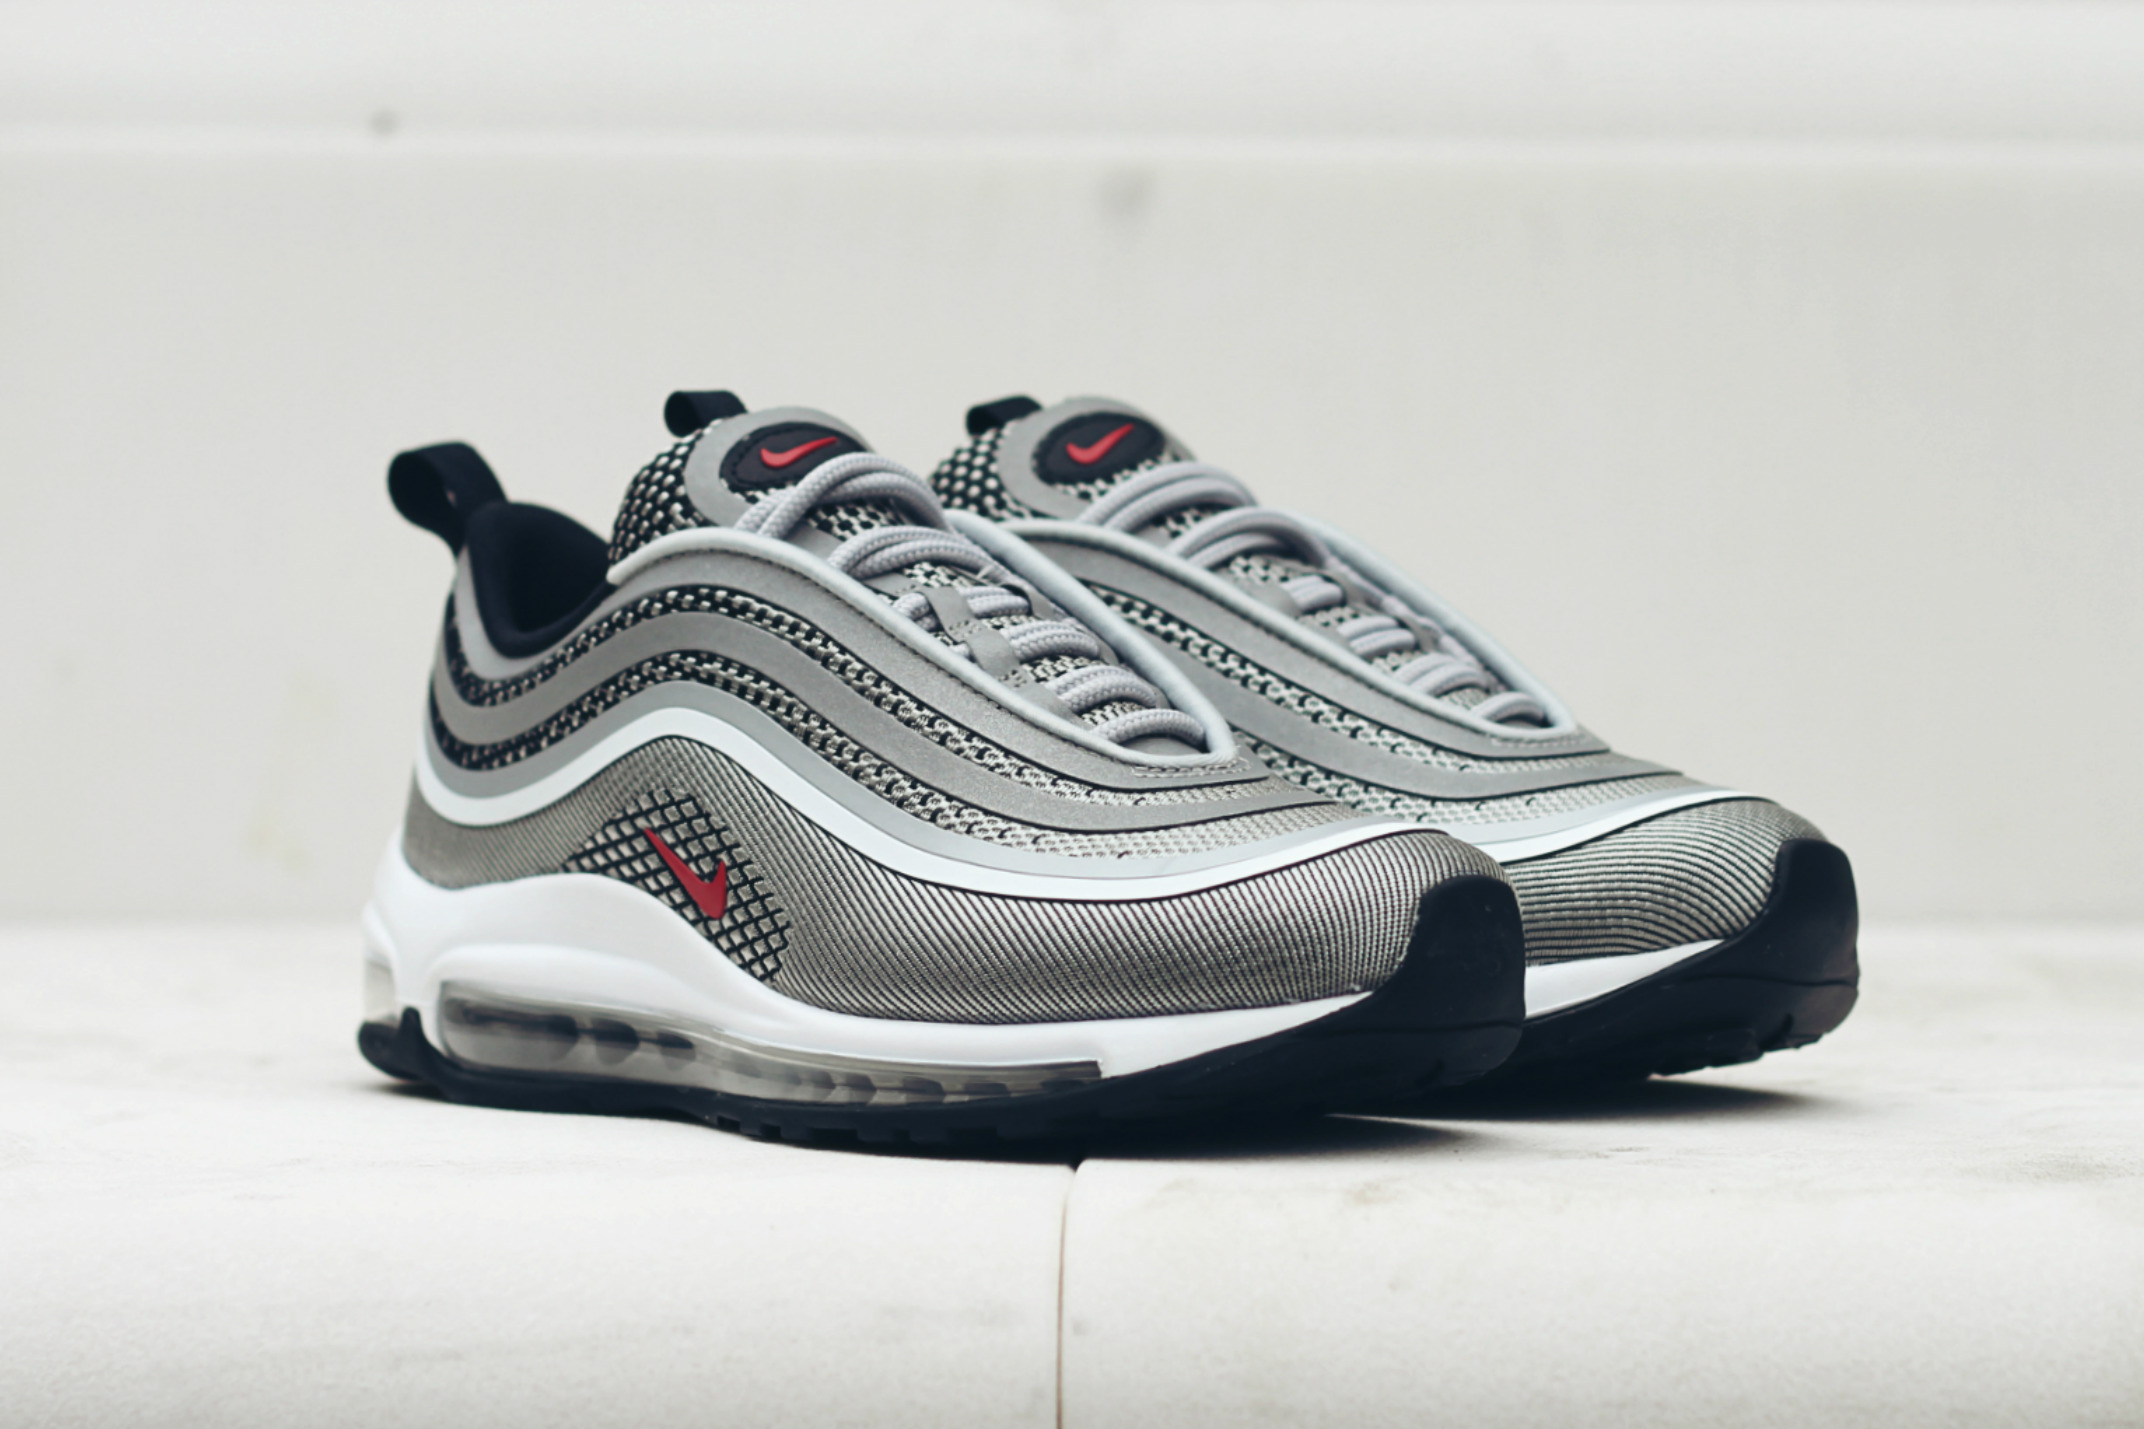 online retailer 509ef a80fa Nike Air Max 97 Ultra 2017 | Buzz - Online Shop